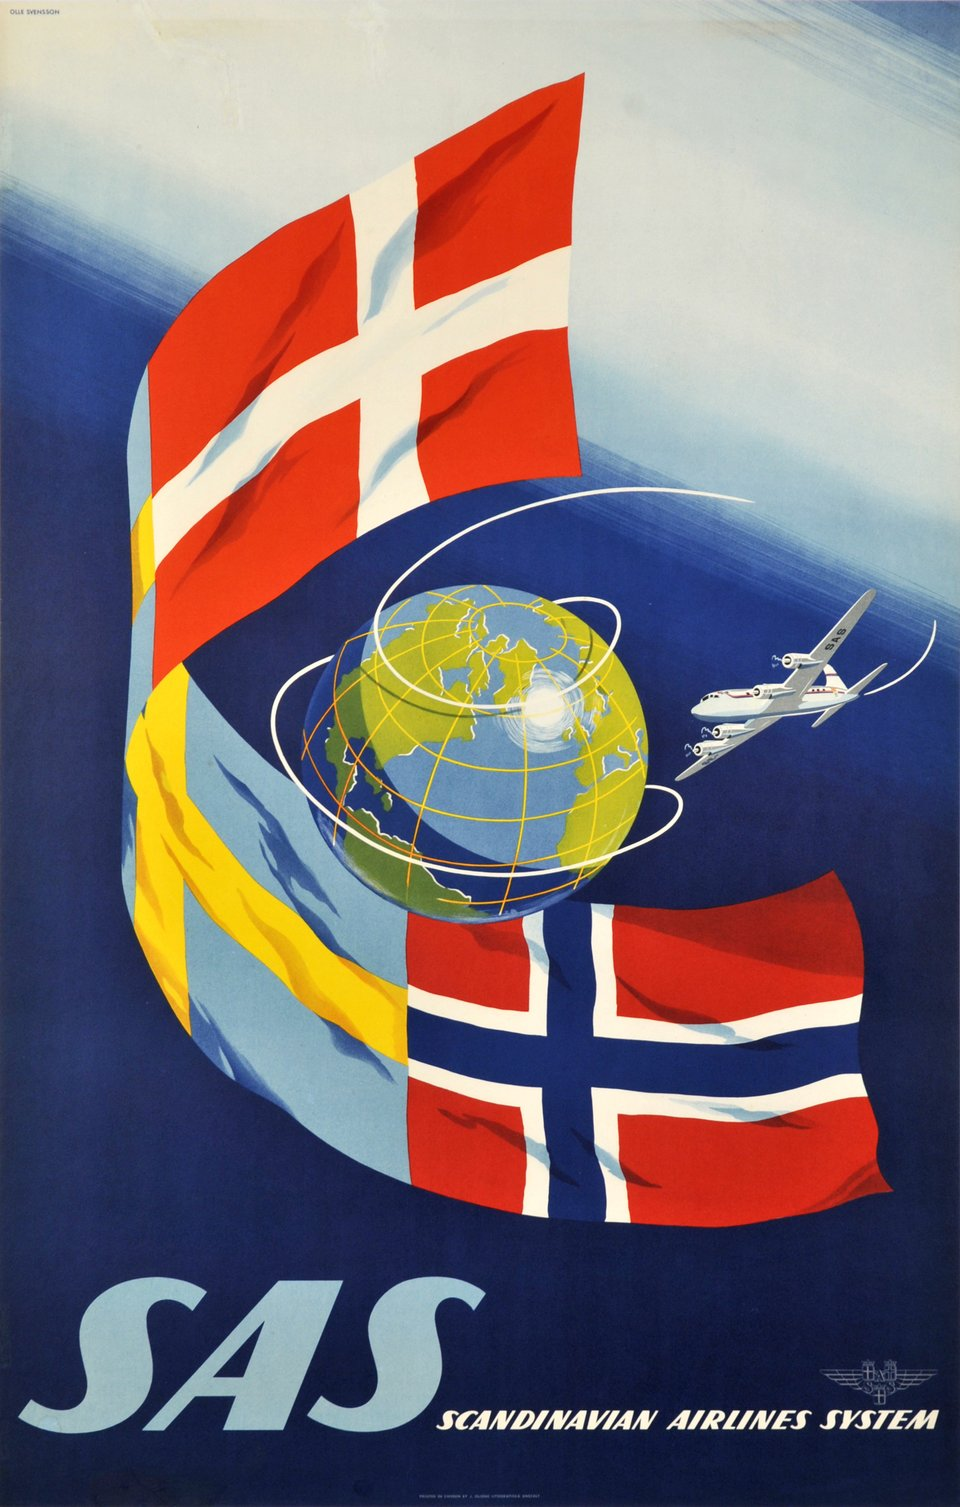 SAS, Scandinavian Airlines System – Affiche ancienne – Olle SWENSSON – 1950